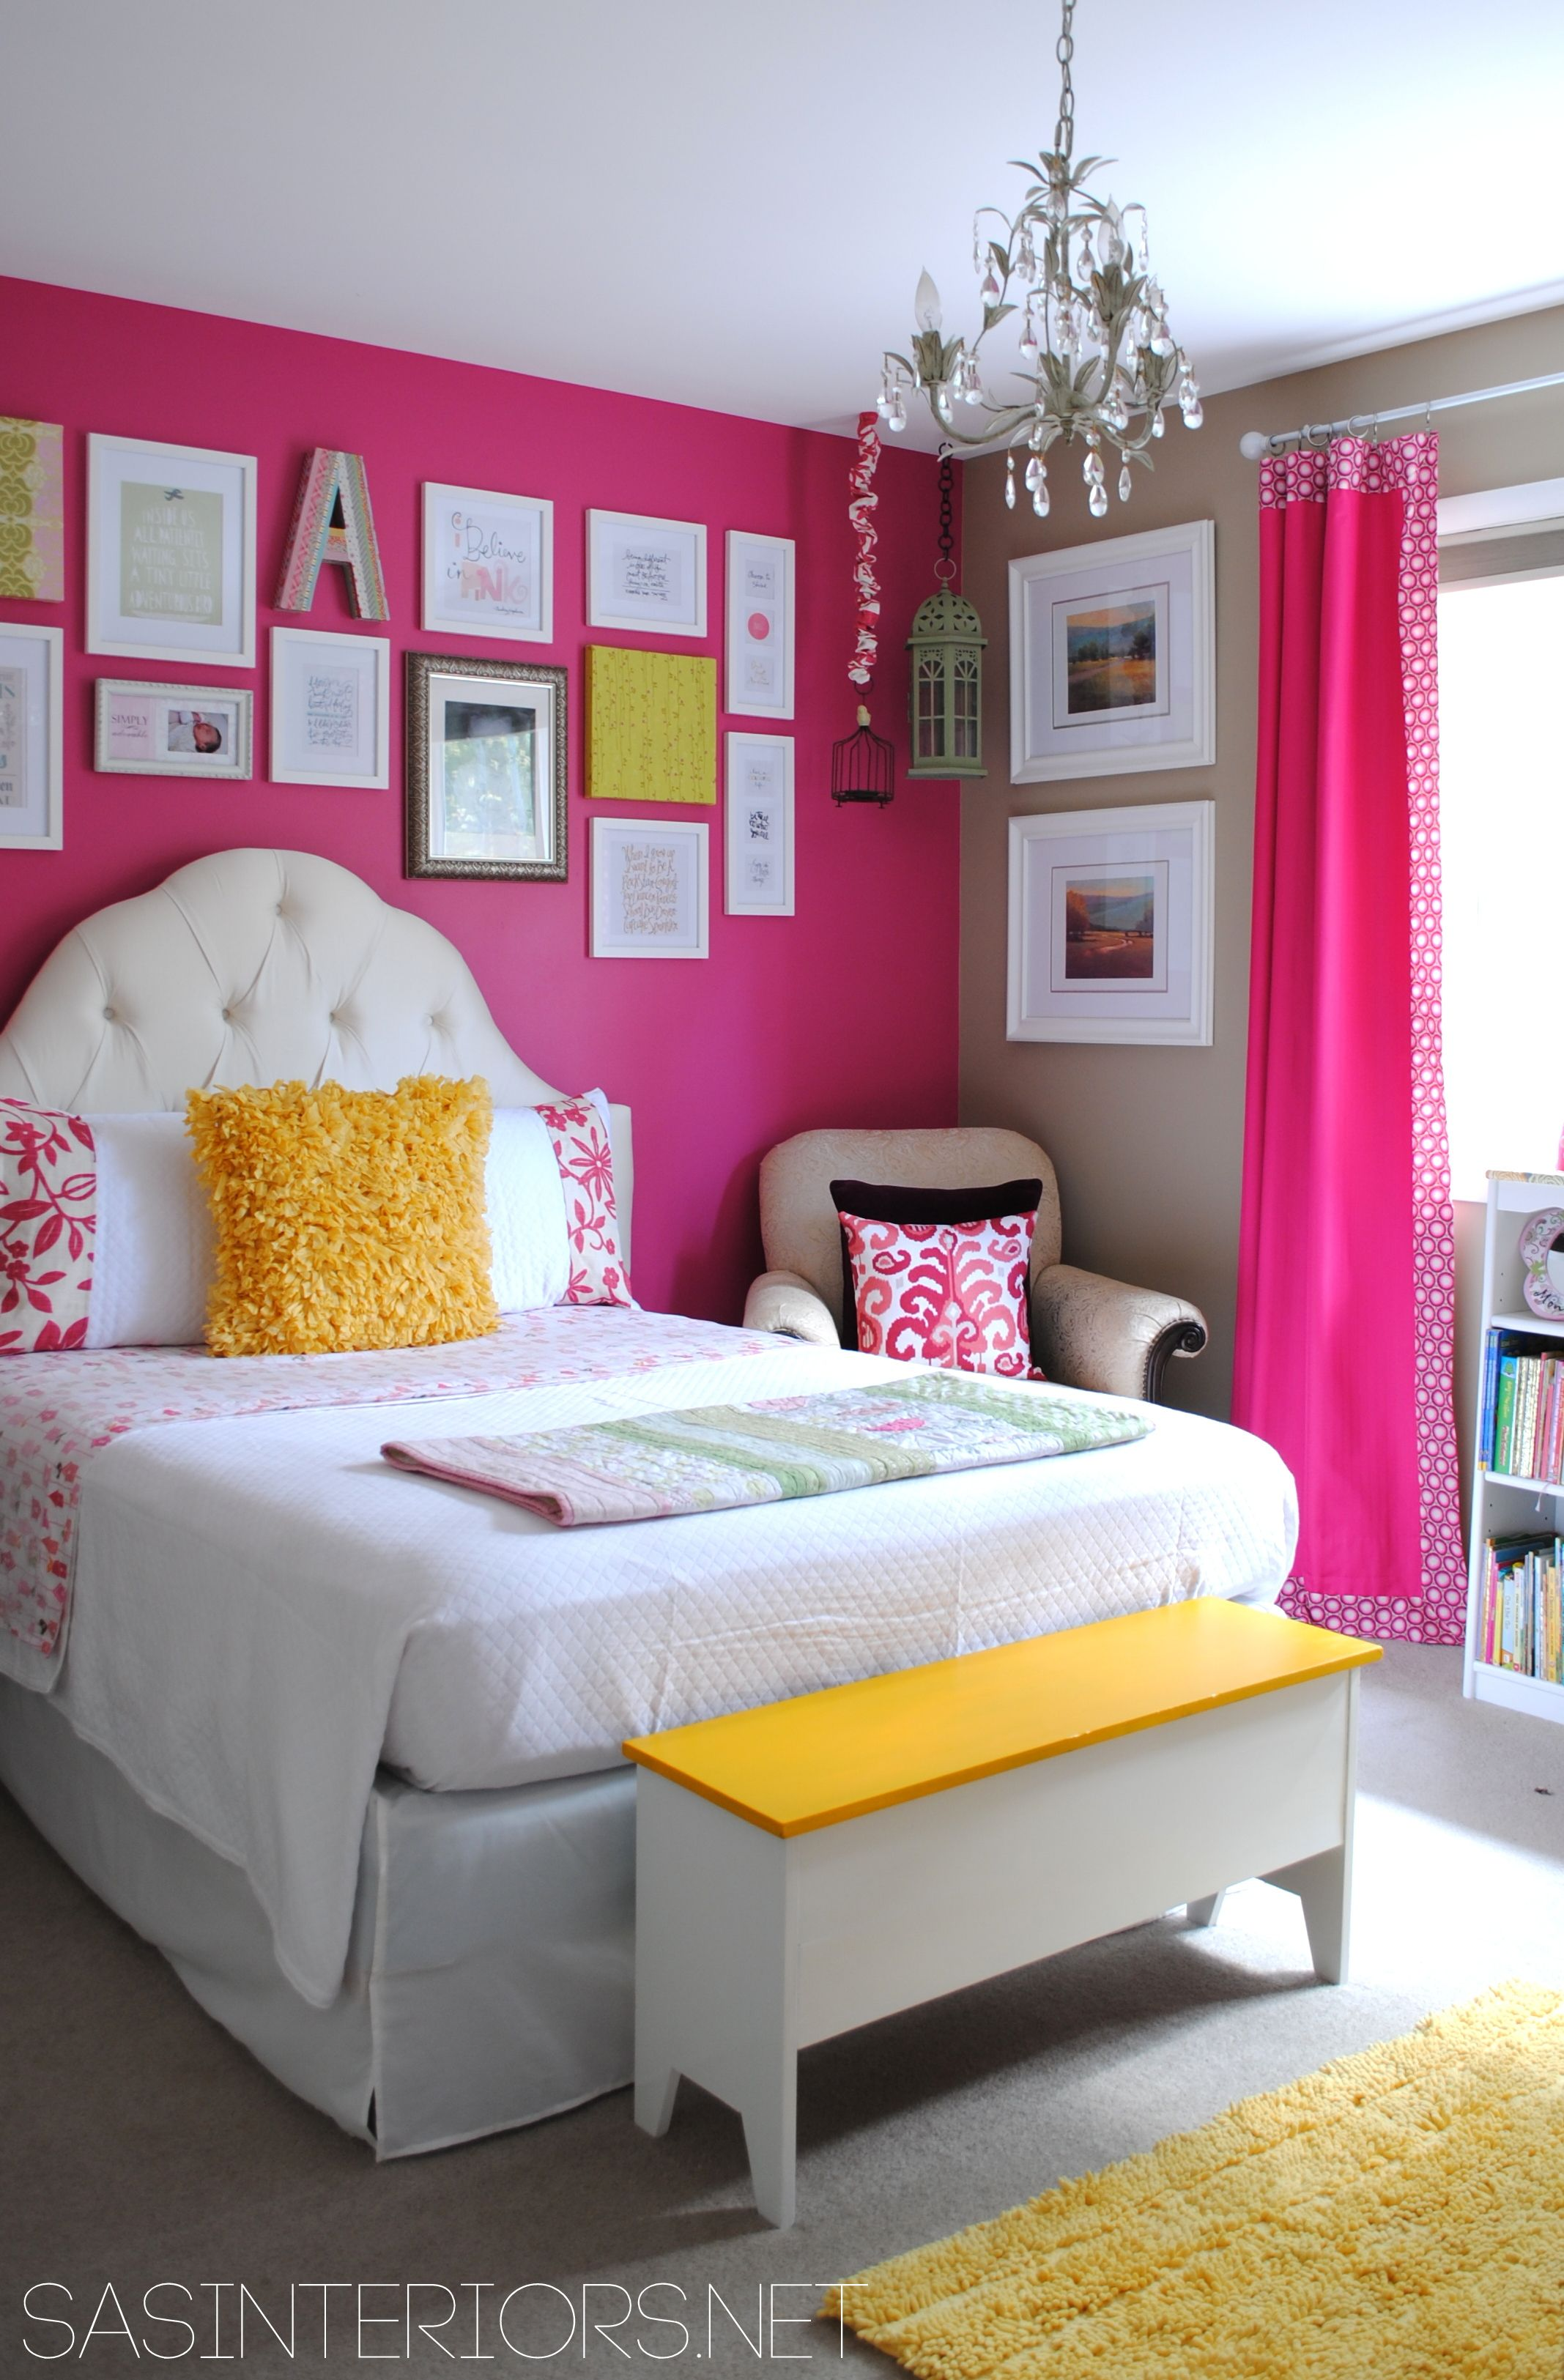 Attrayant Girls Room: Benjamin Moore Royal Fuchsia And Lenox Tan